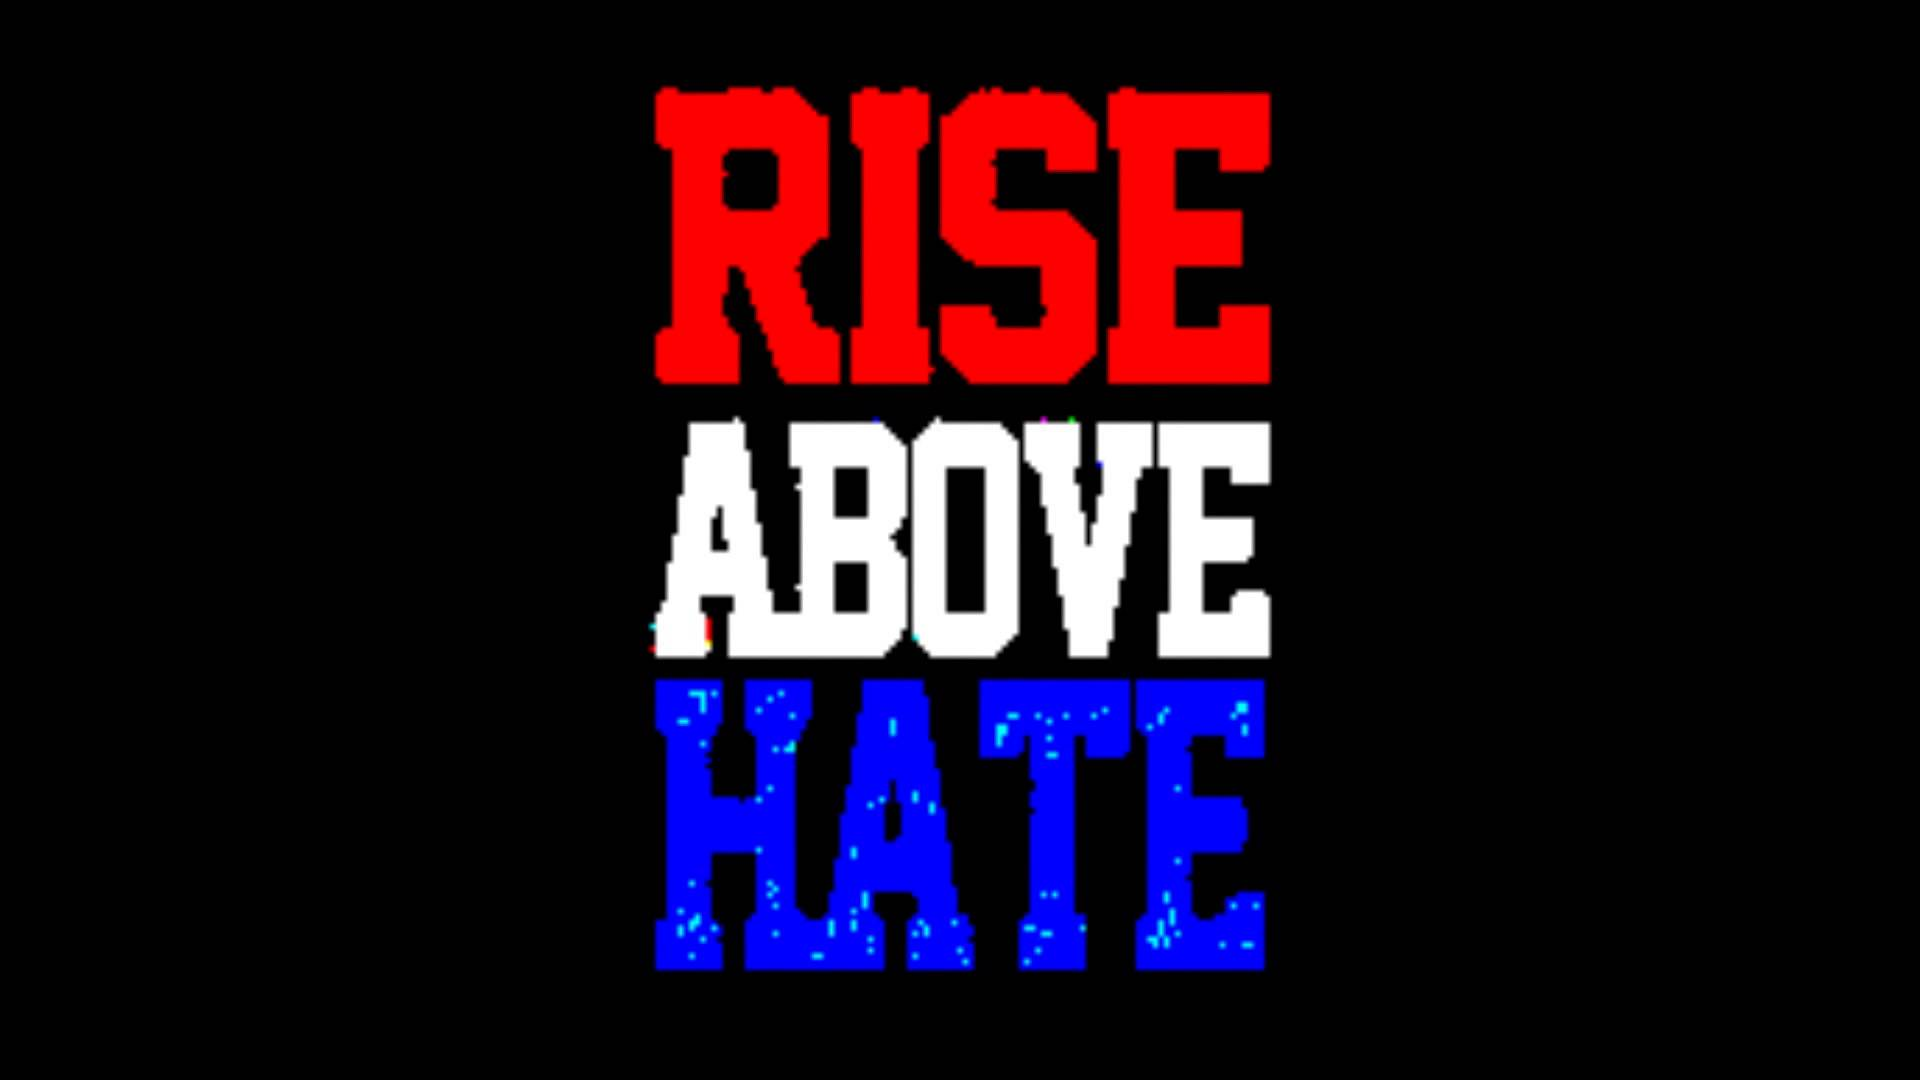 John Cena Wallpapers Rise Above Hate Wallpaper Cave